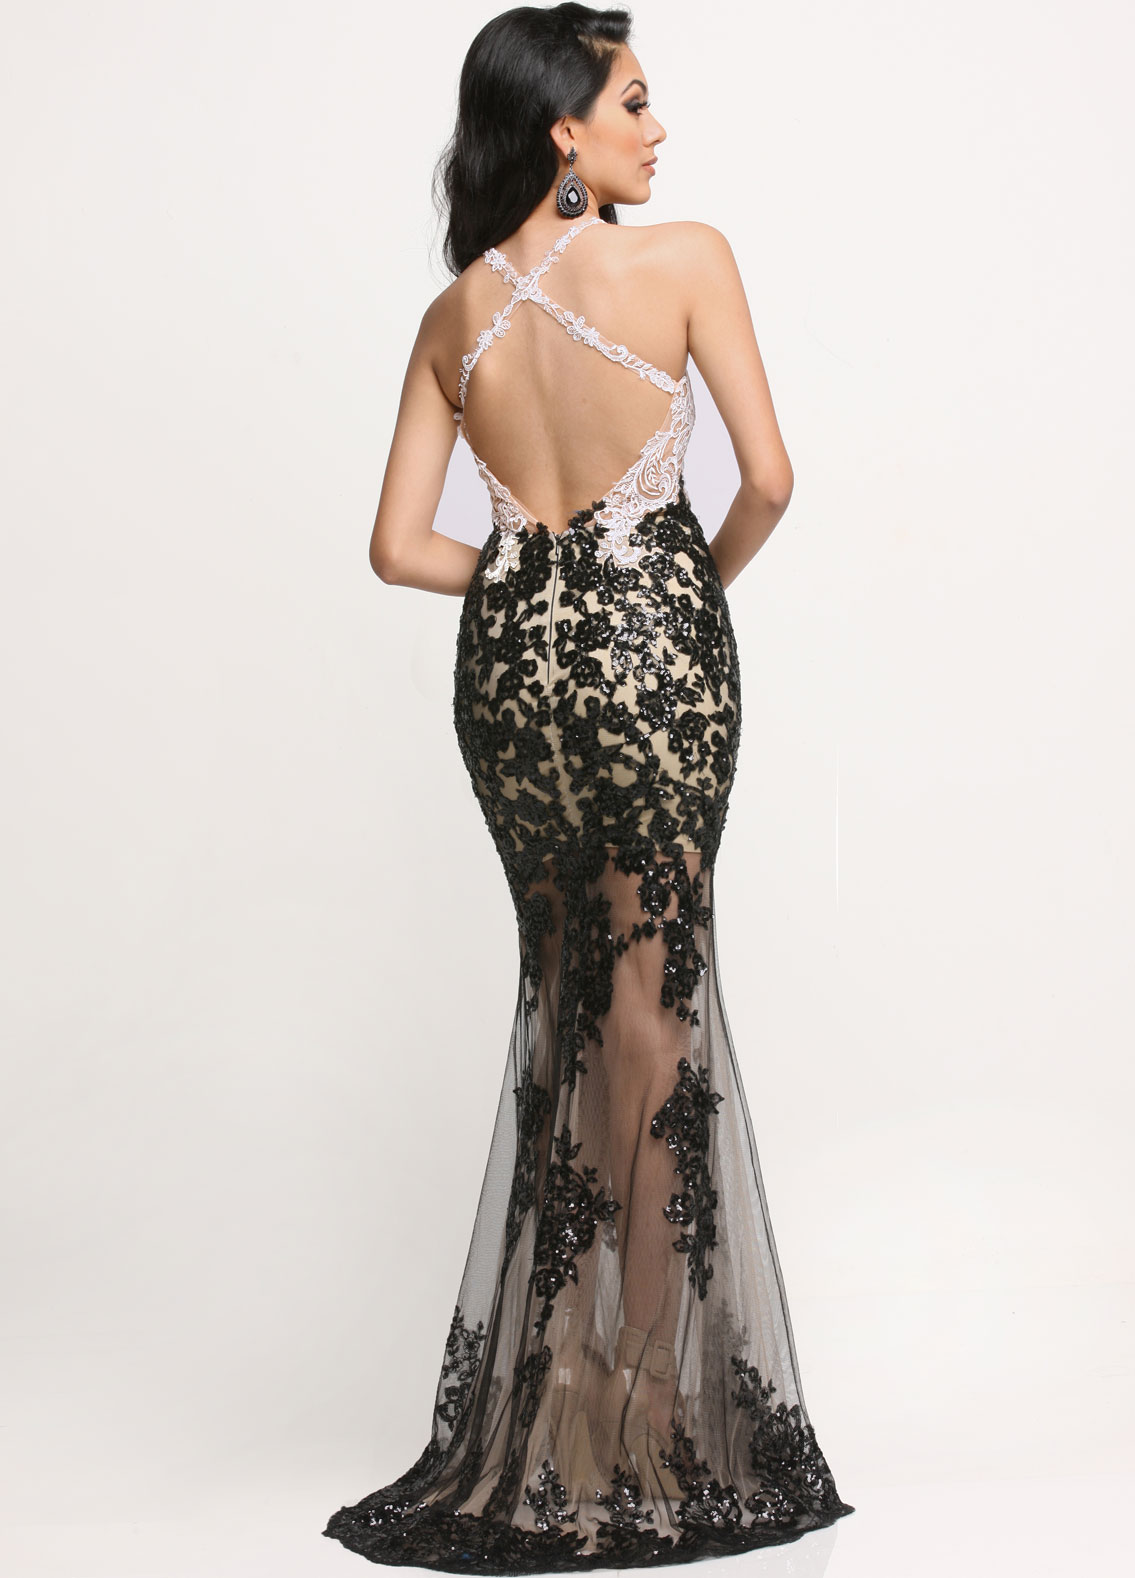 Image showing back view of style #71649